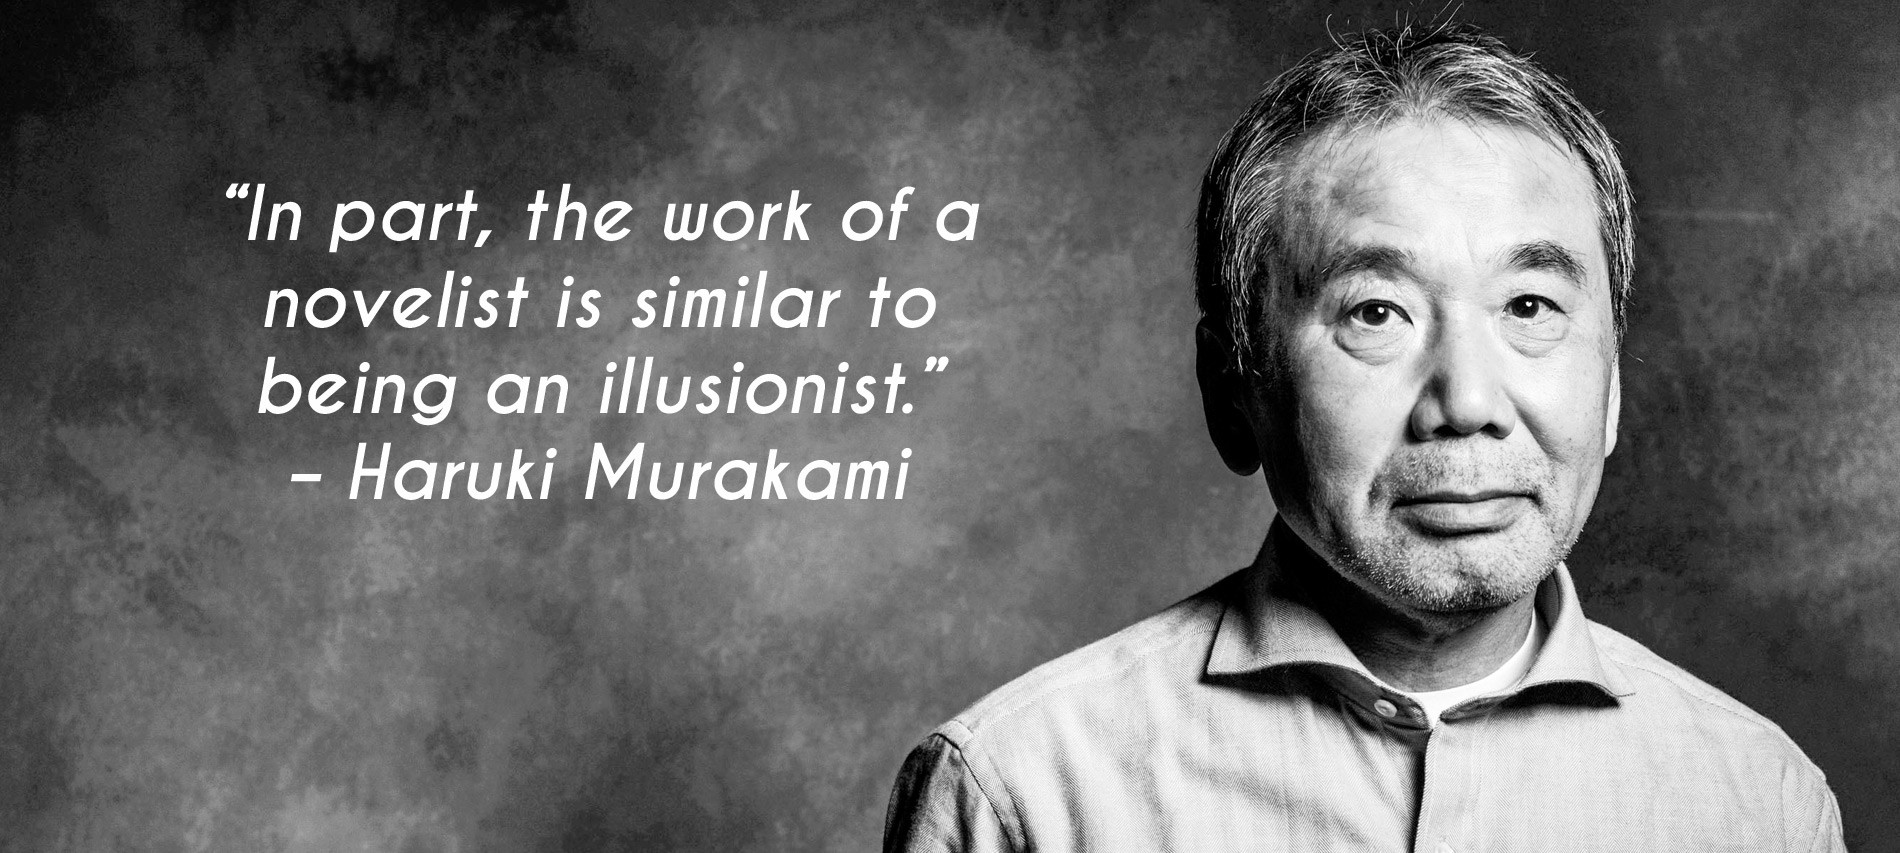 Haruki Murakami's Lessons on Writing and Leading a Writer's Life